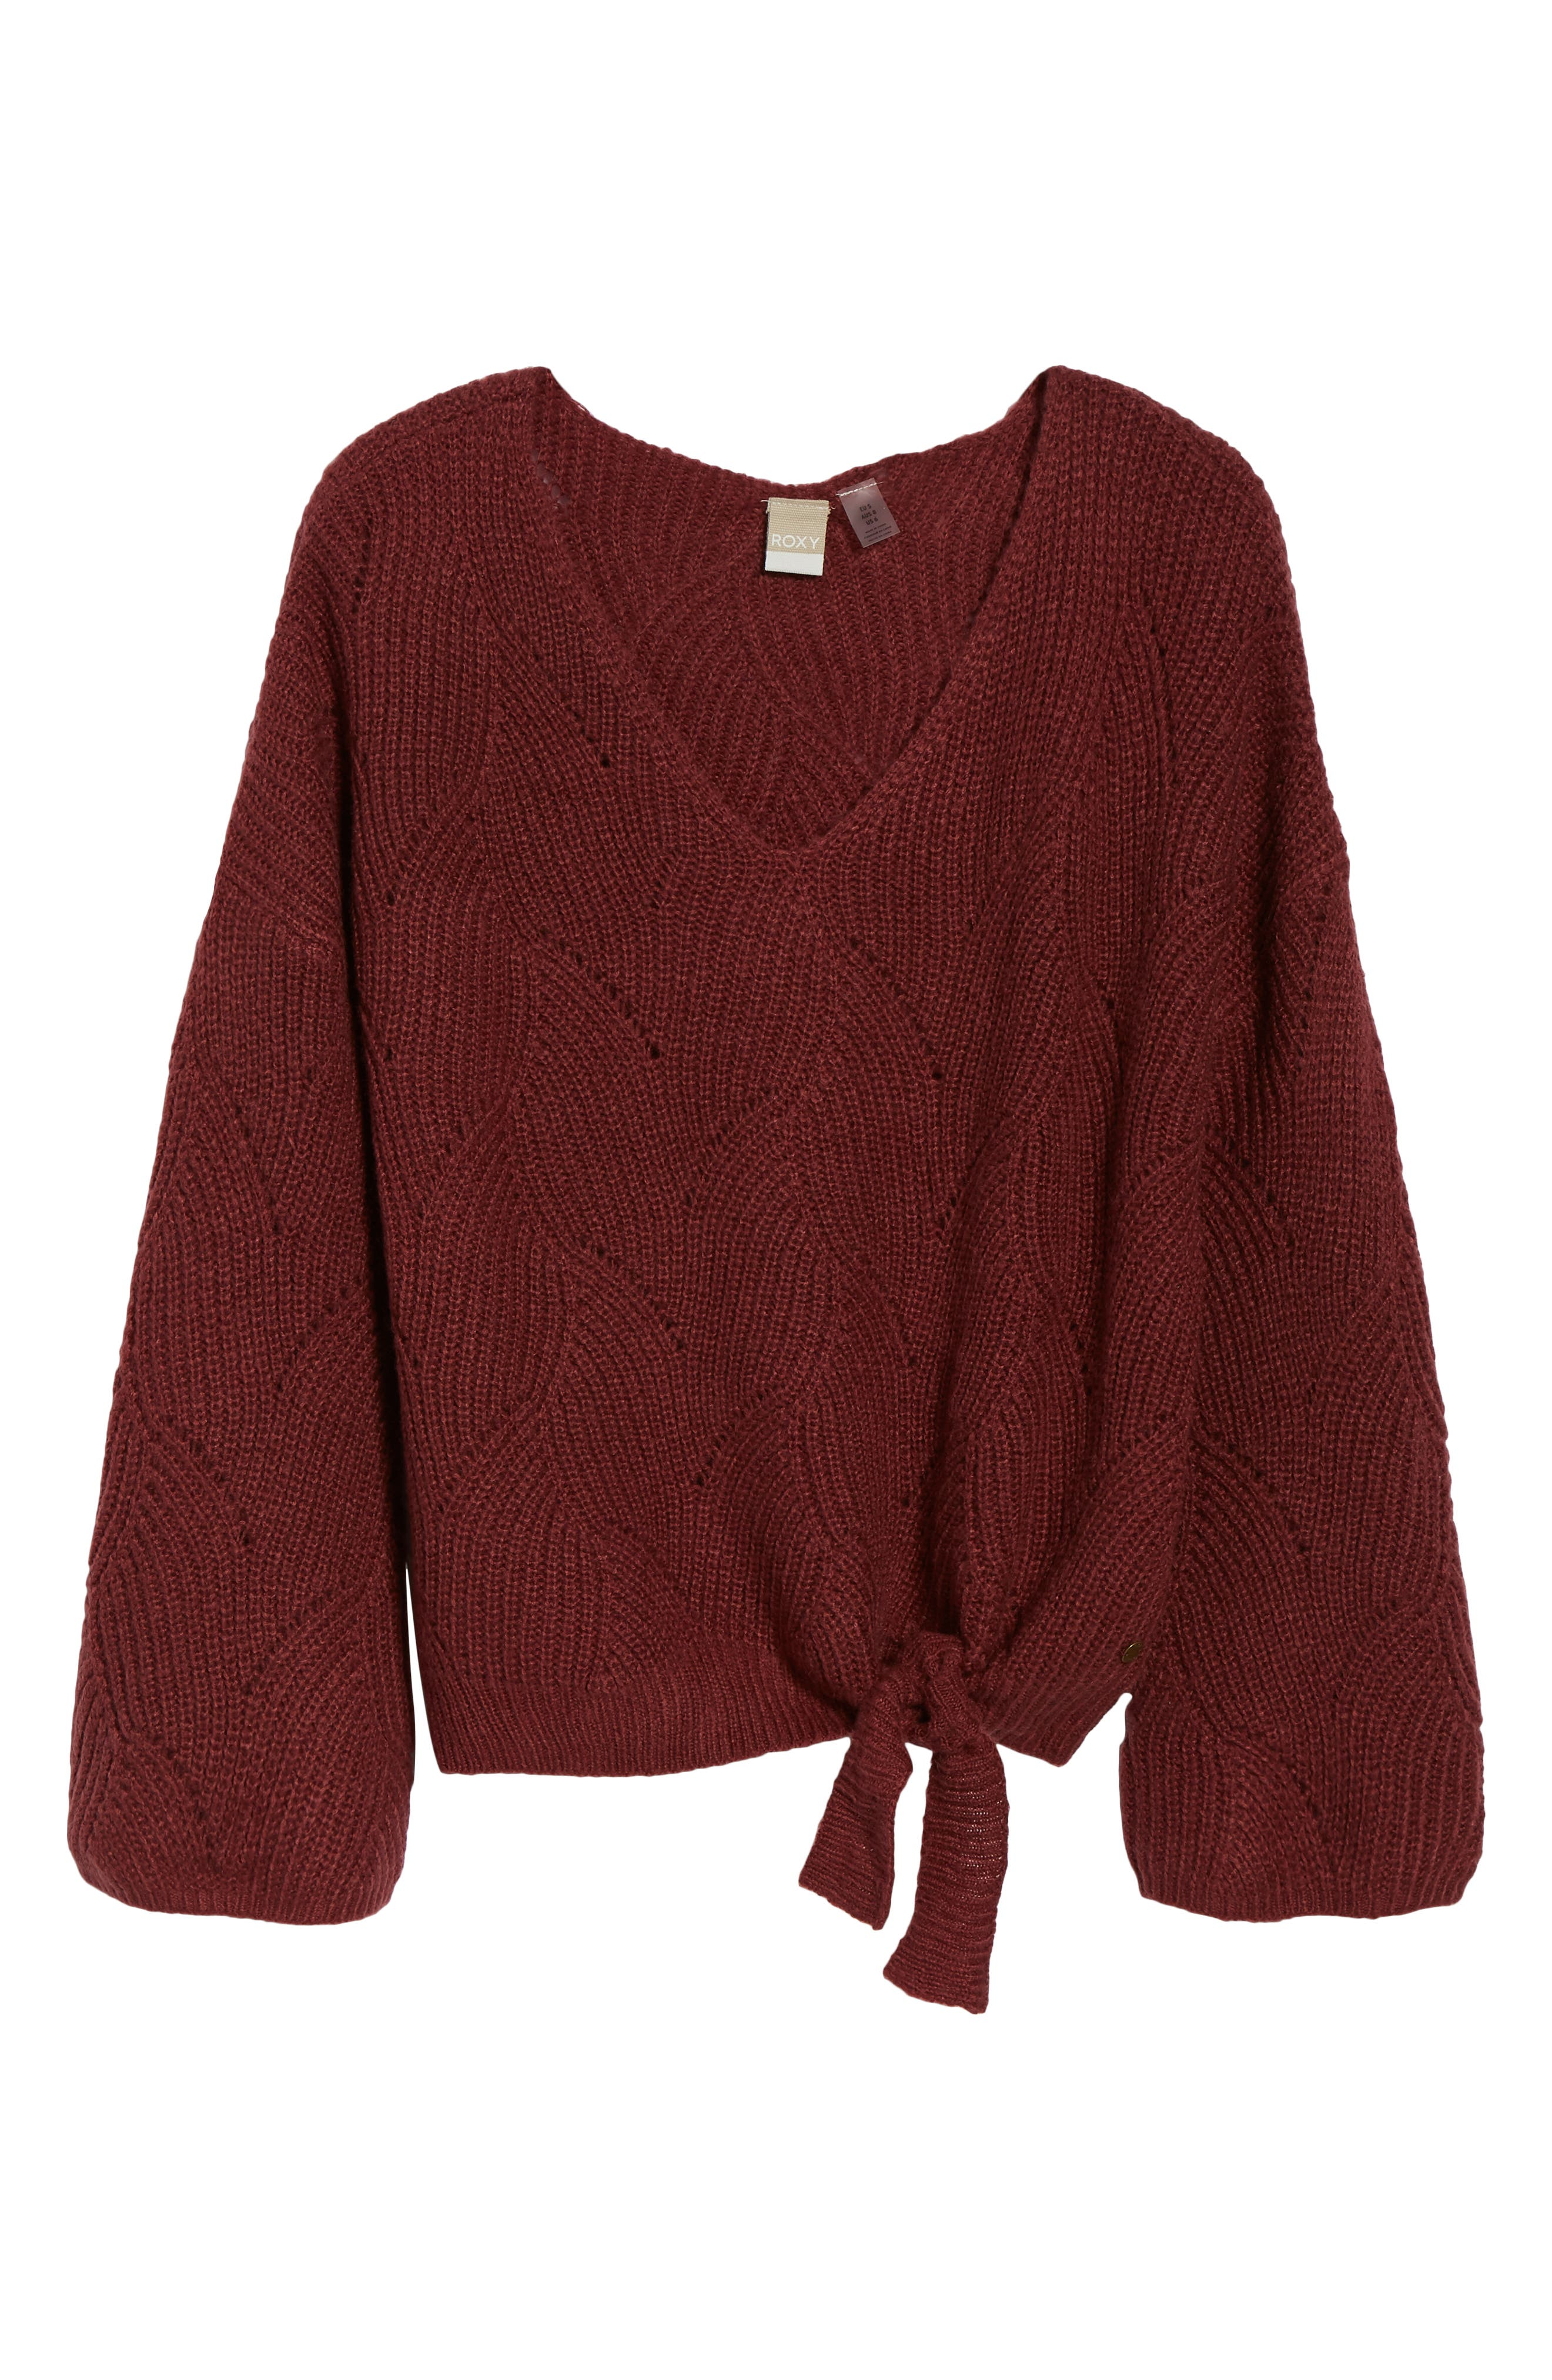 See You In Bali Sweater,                             Alternate thumbnail 6, color,                             OXBLOOD RED